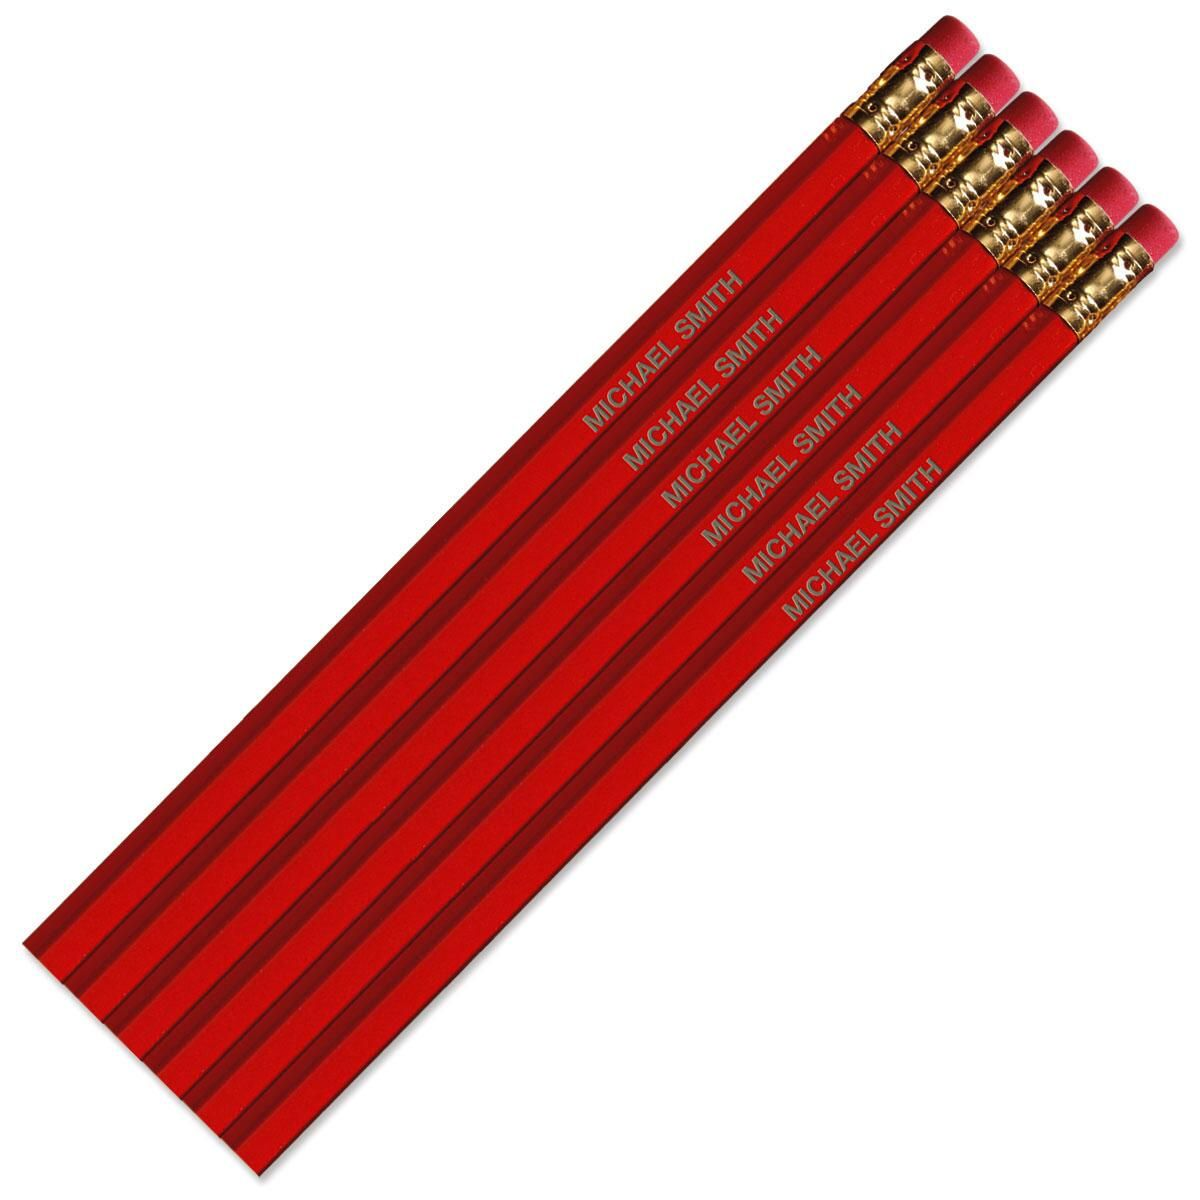 Red Personalized Pencils